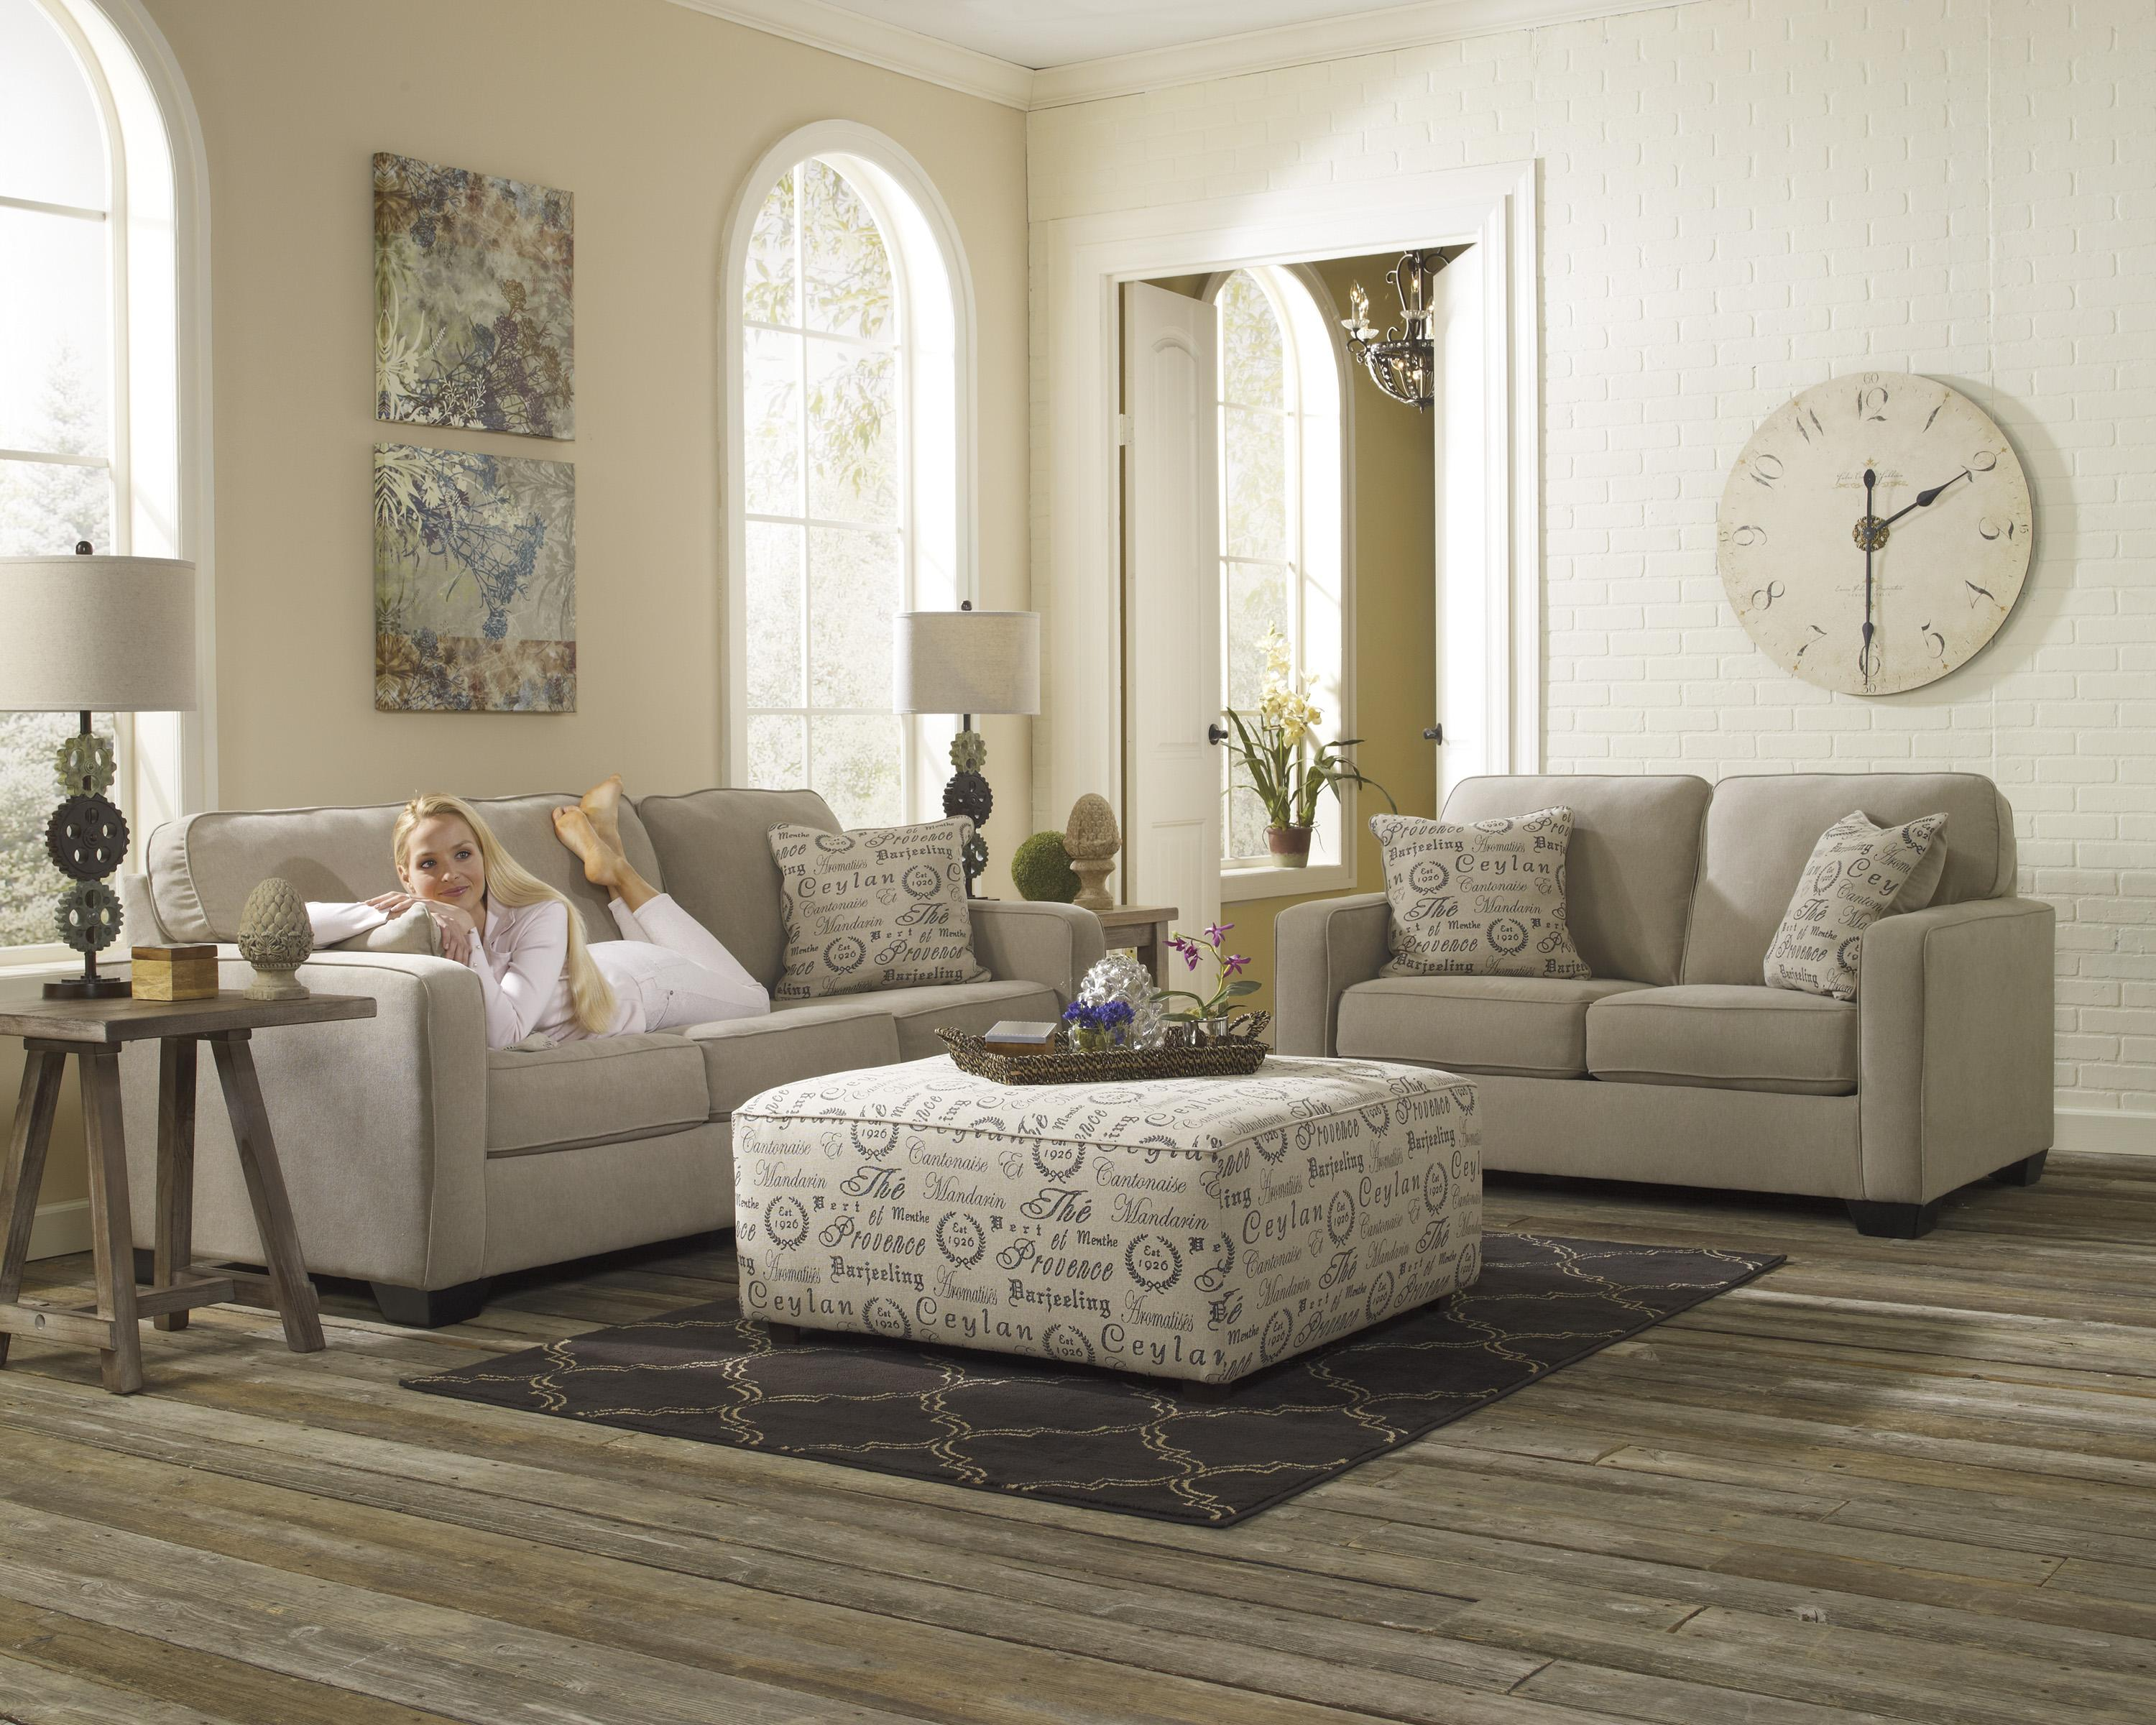 Signature Design by Ashley Alenya - Quartz Stationary Living Room Group - Item Number: 16600 Living Room Group 2